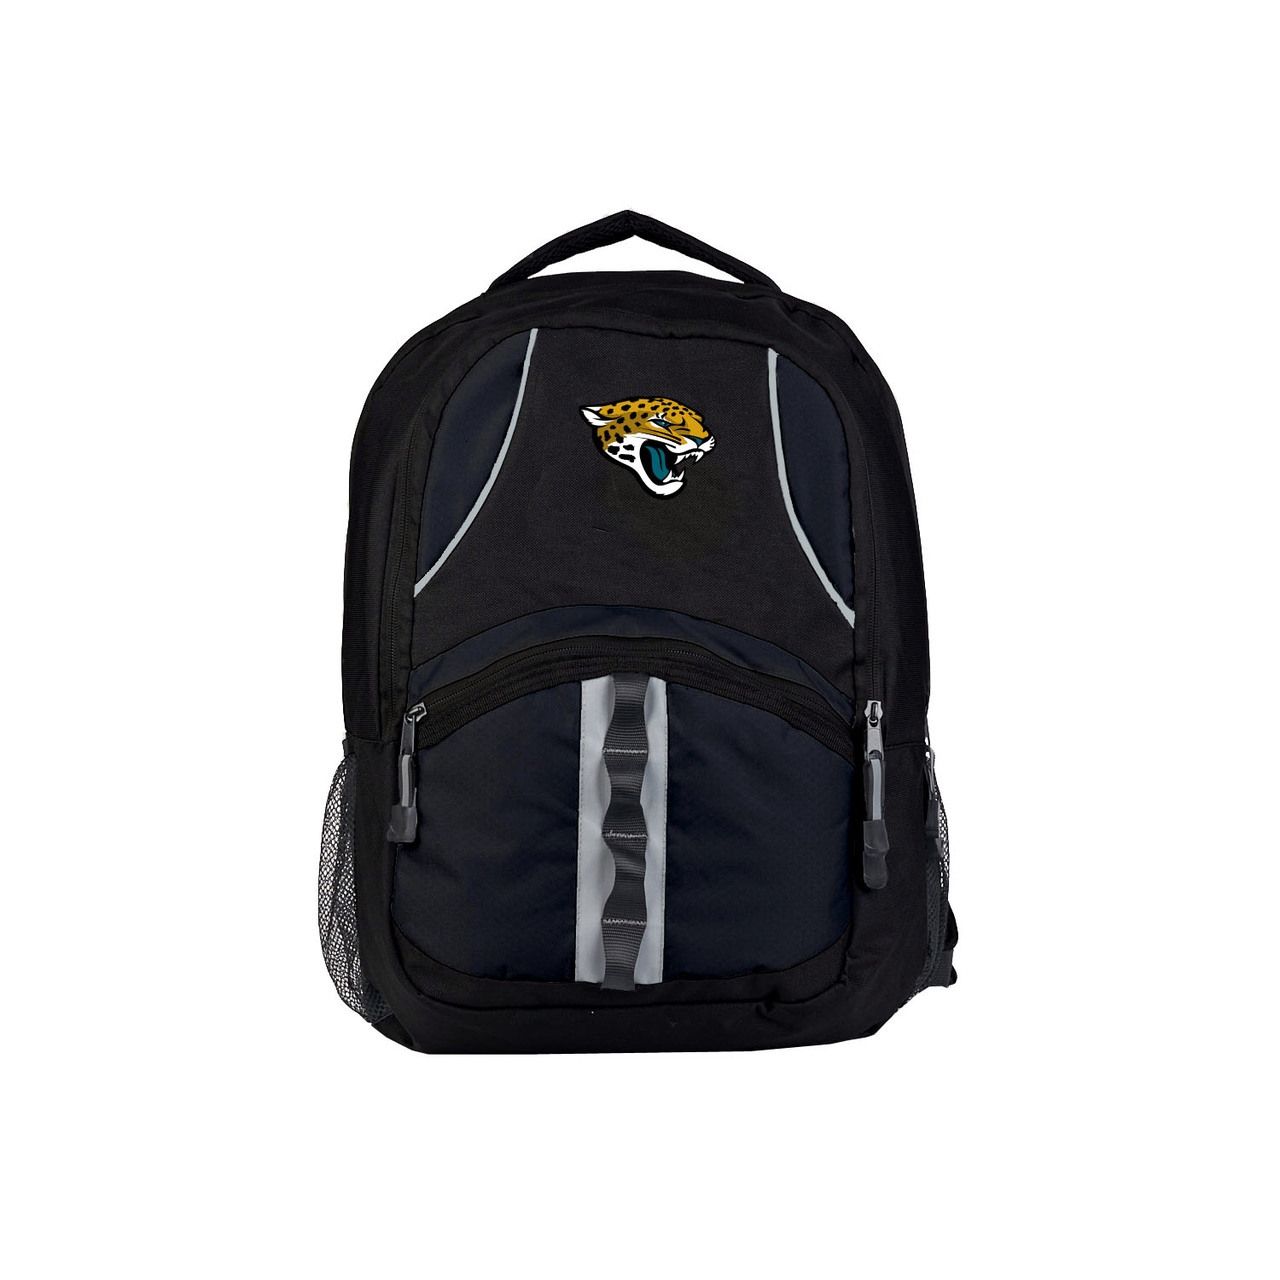 Nfl Football Jacksonville Jaguars Tumblers And Pint Glasses - 8791890642 - Jacksonville Jaguars Backpack Captain Style Black And Black 8791890642